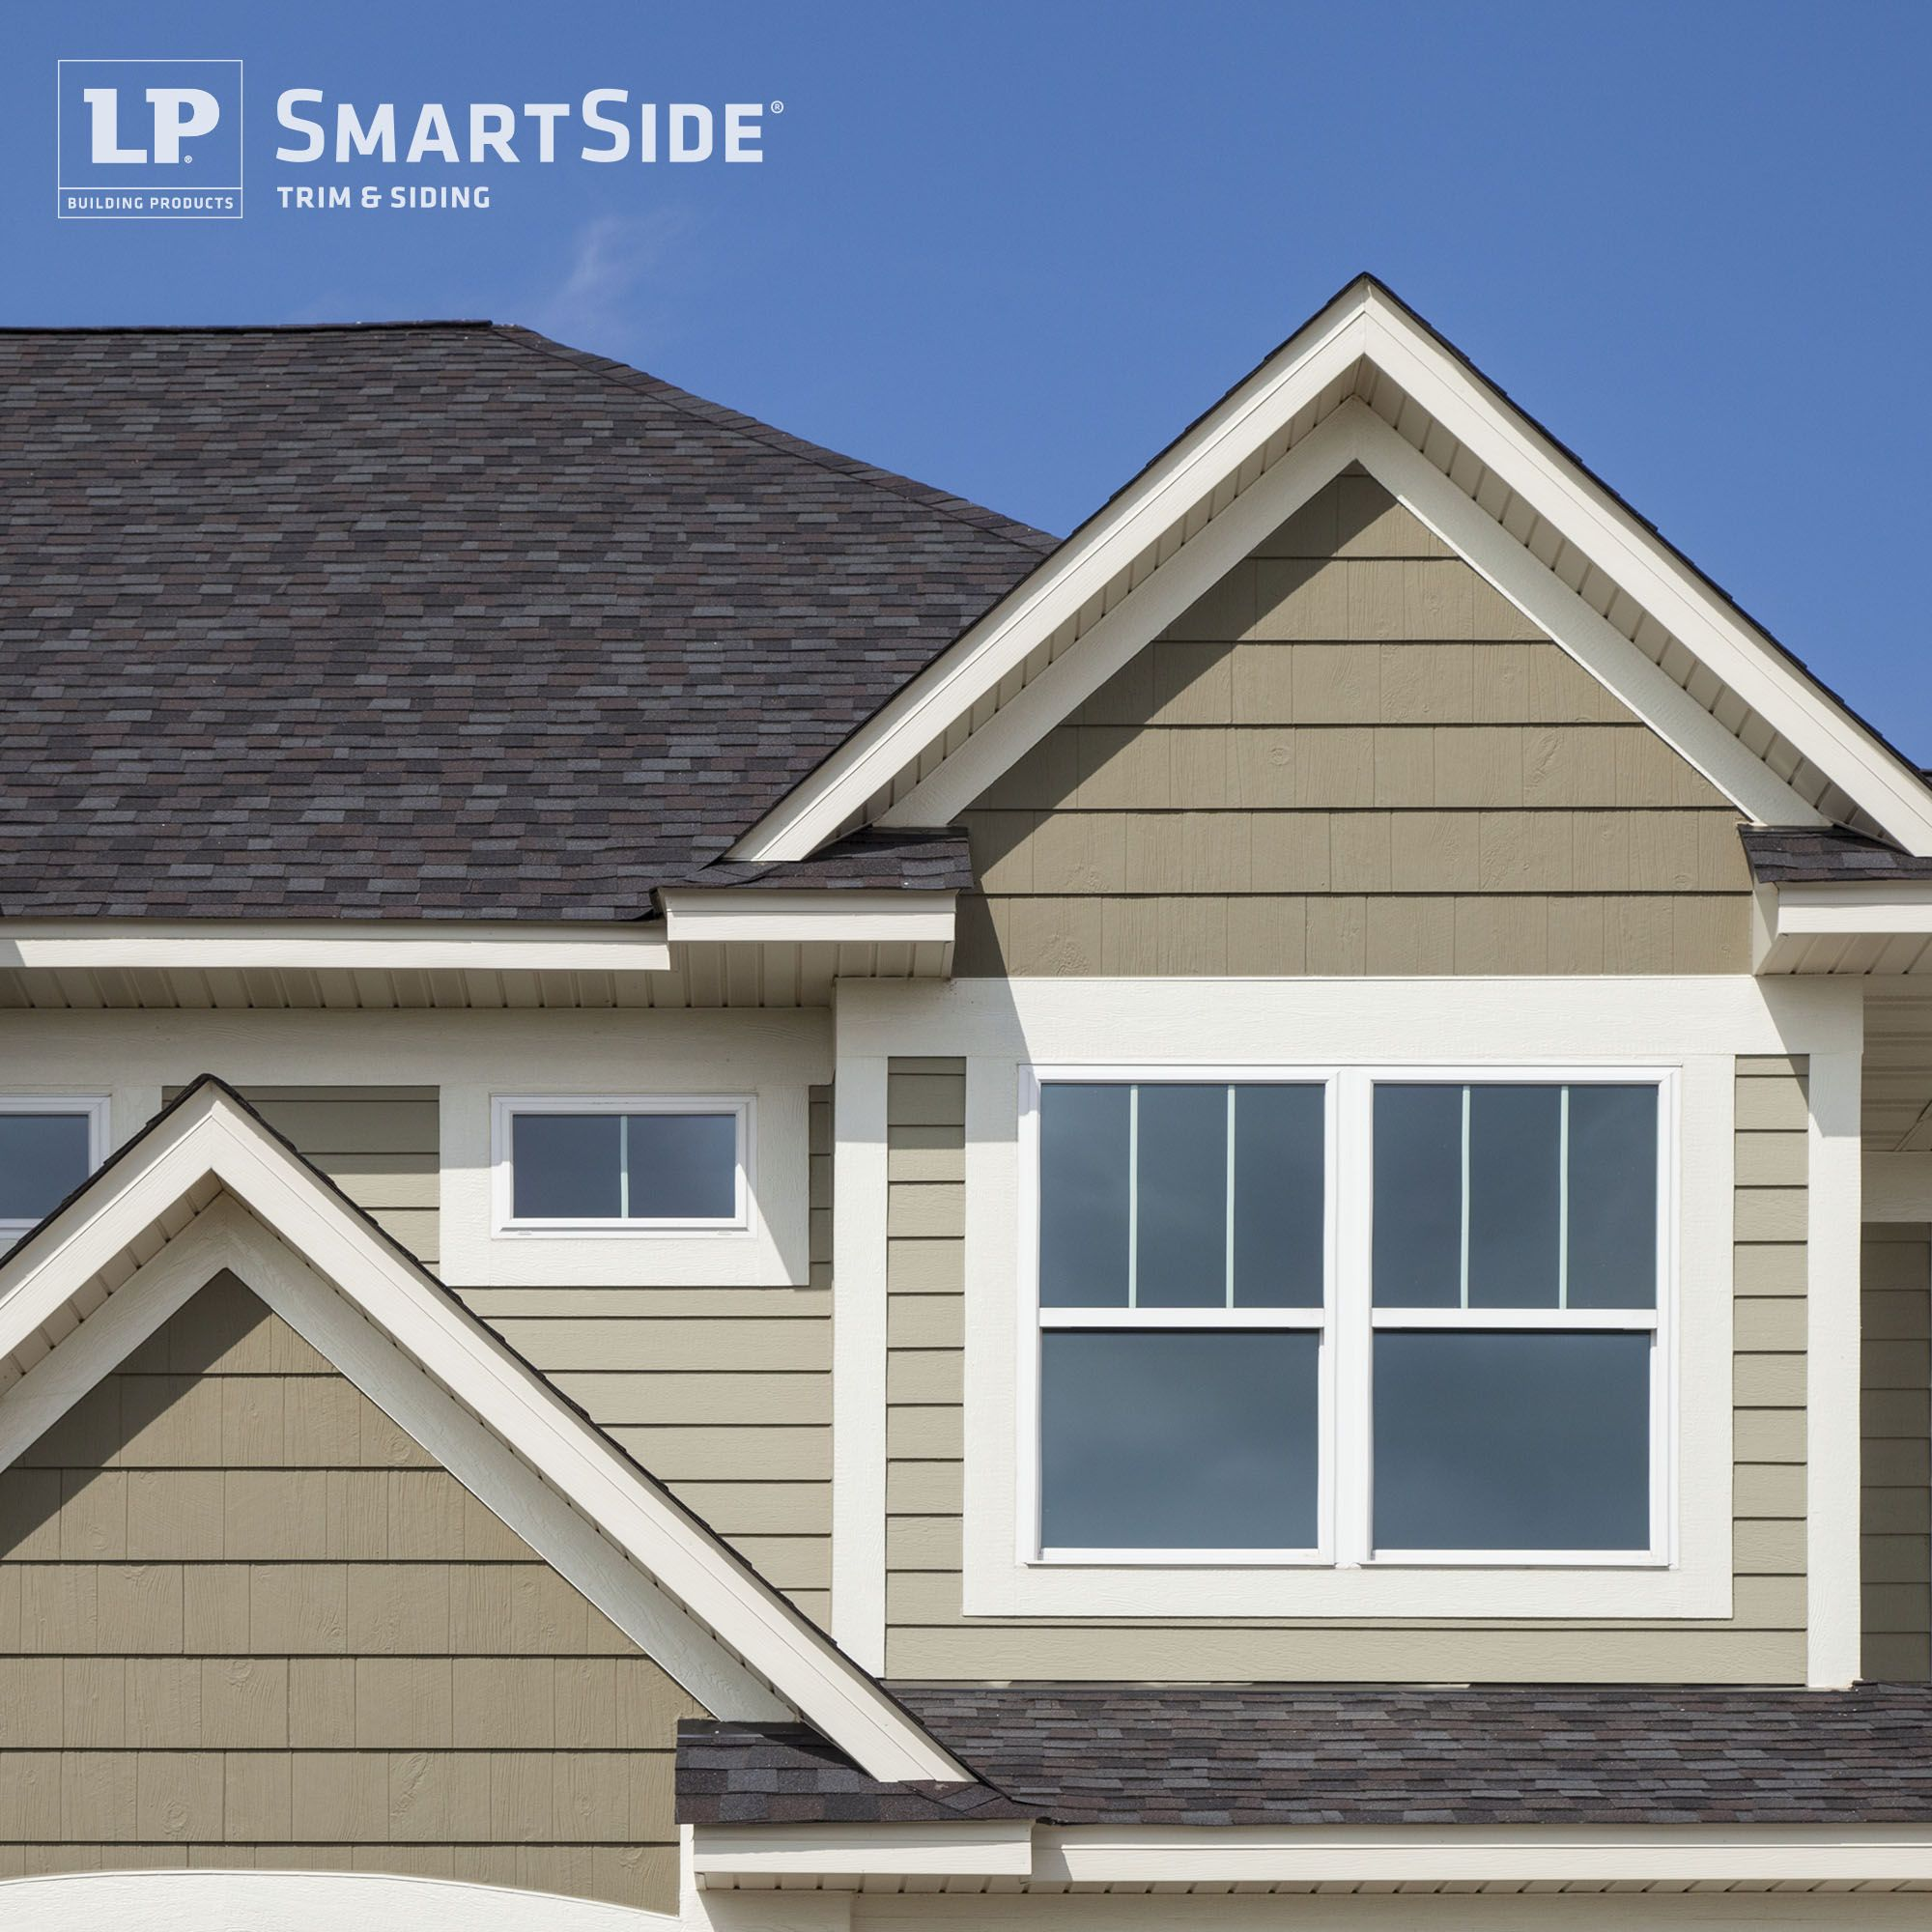 Lp smartside cedar shakes trim and lap siding in neutral for Lp smartside shake colors